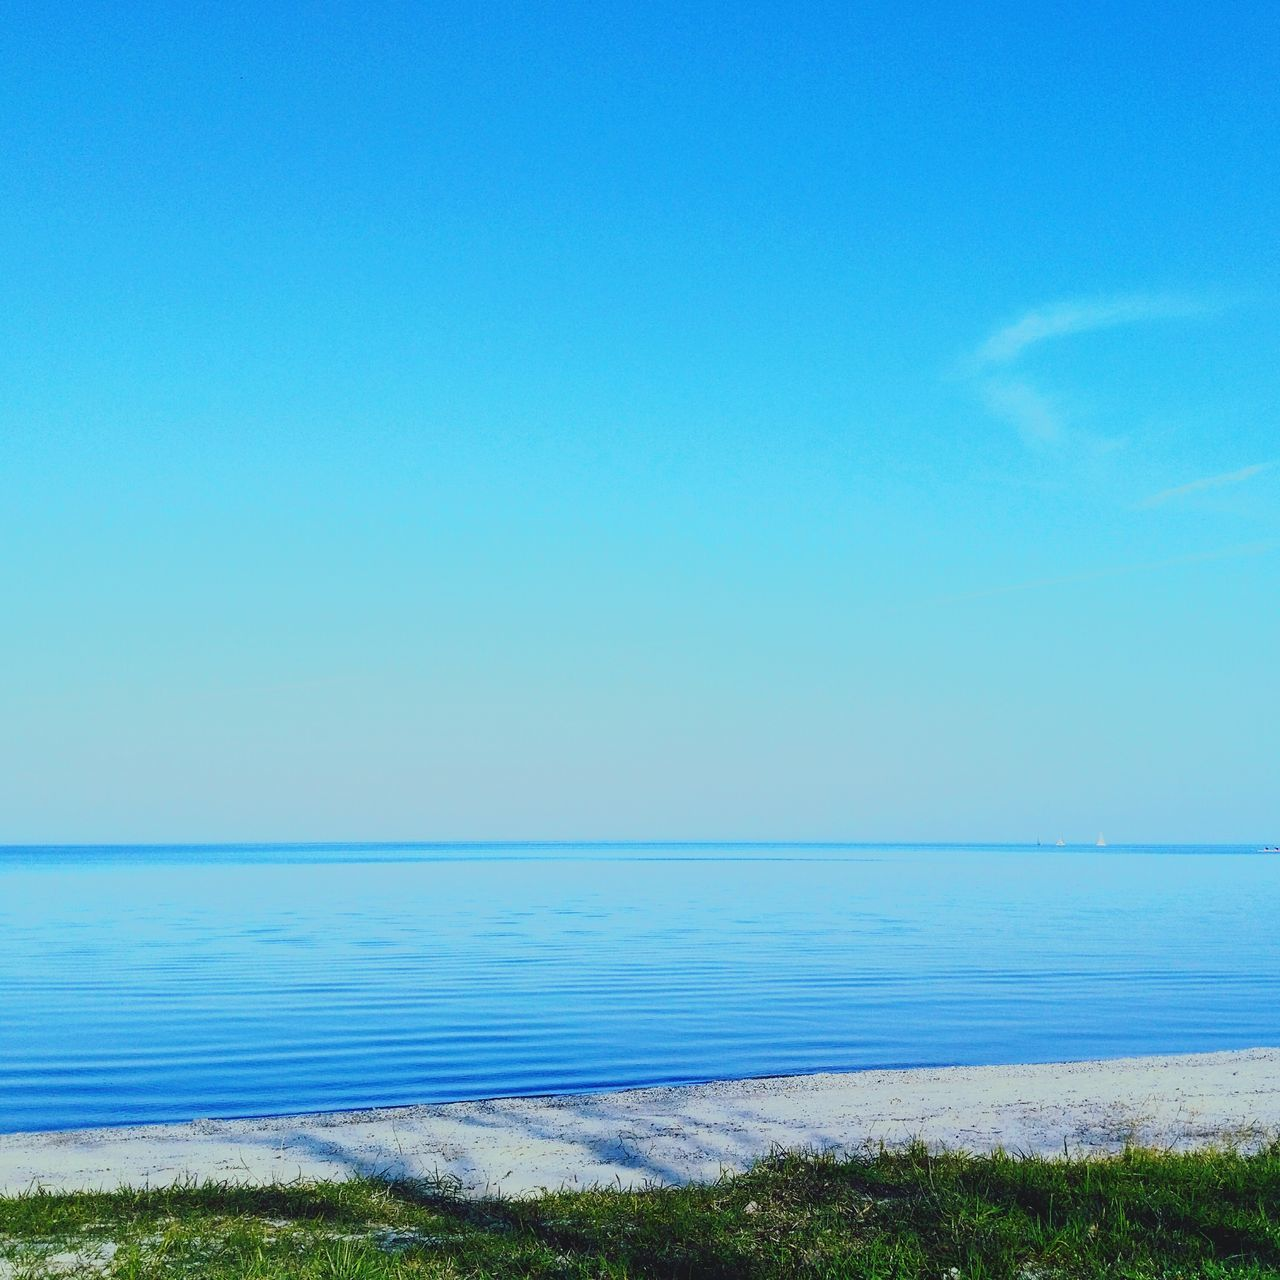 sea, blue, water, scenics, nature, tranquil scene, horizon over water, tranquility, beauty in nature, outdoors, day, clear sky, grass, no people, beach, sky, vacations